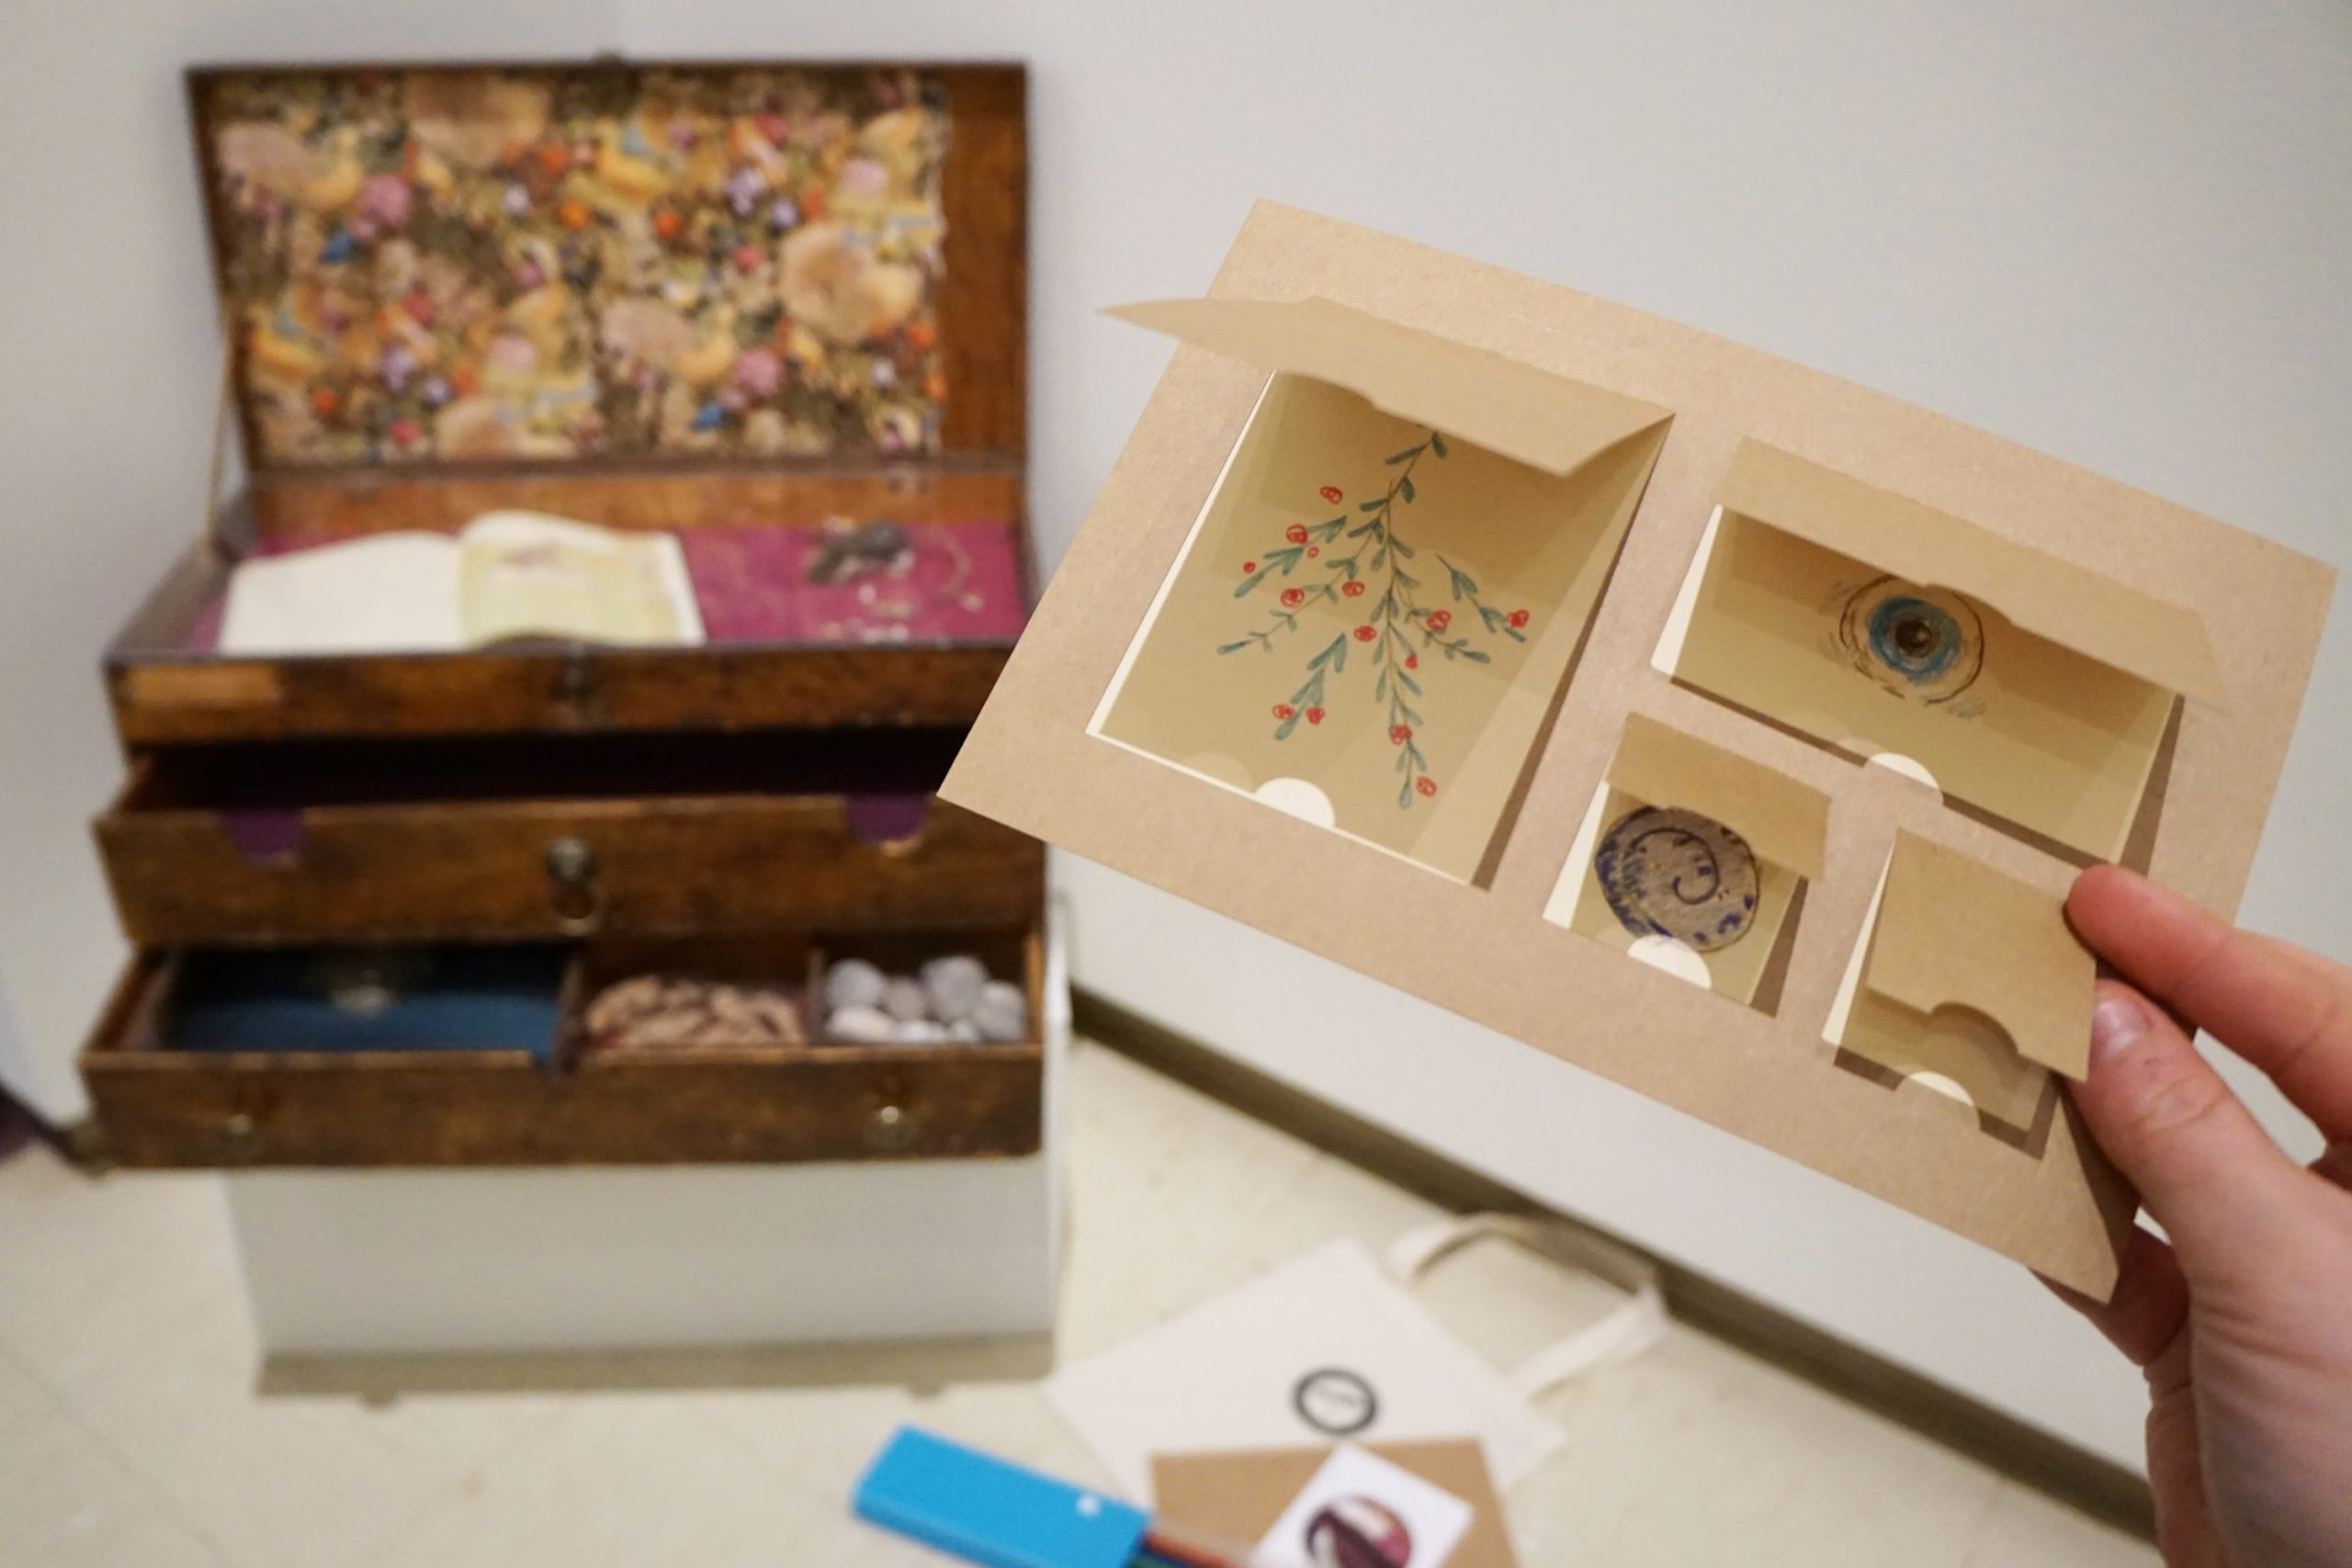 A hand holds a small card with five pop-out windows in a gallery. On the floor to the right, a small worn wooden chest with a hinged top is propped open to display an open book and life-sized felt mouse on plum-coloured velvet inside. Next to the artwork are pencils, a small canvas bag and an instructional card.